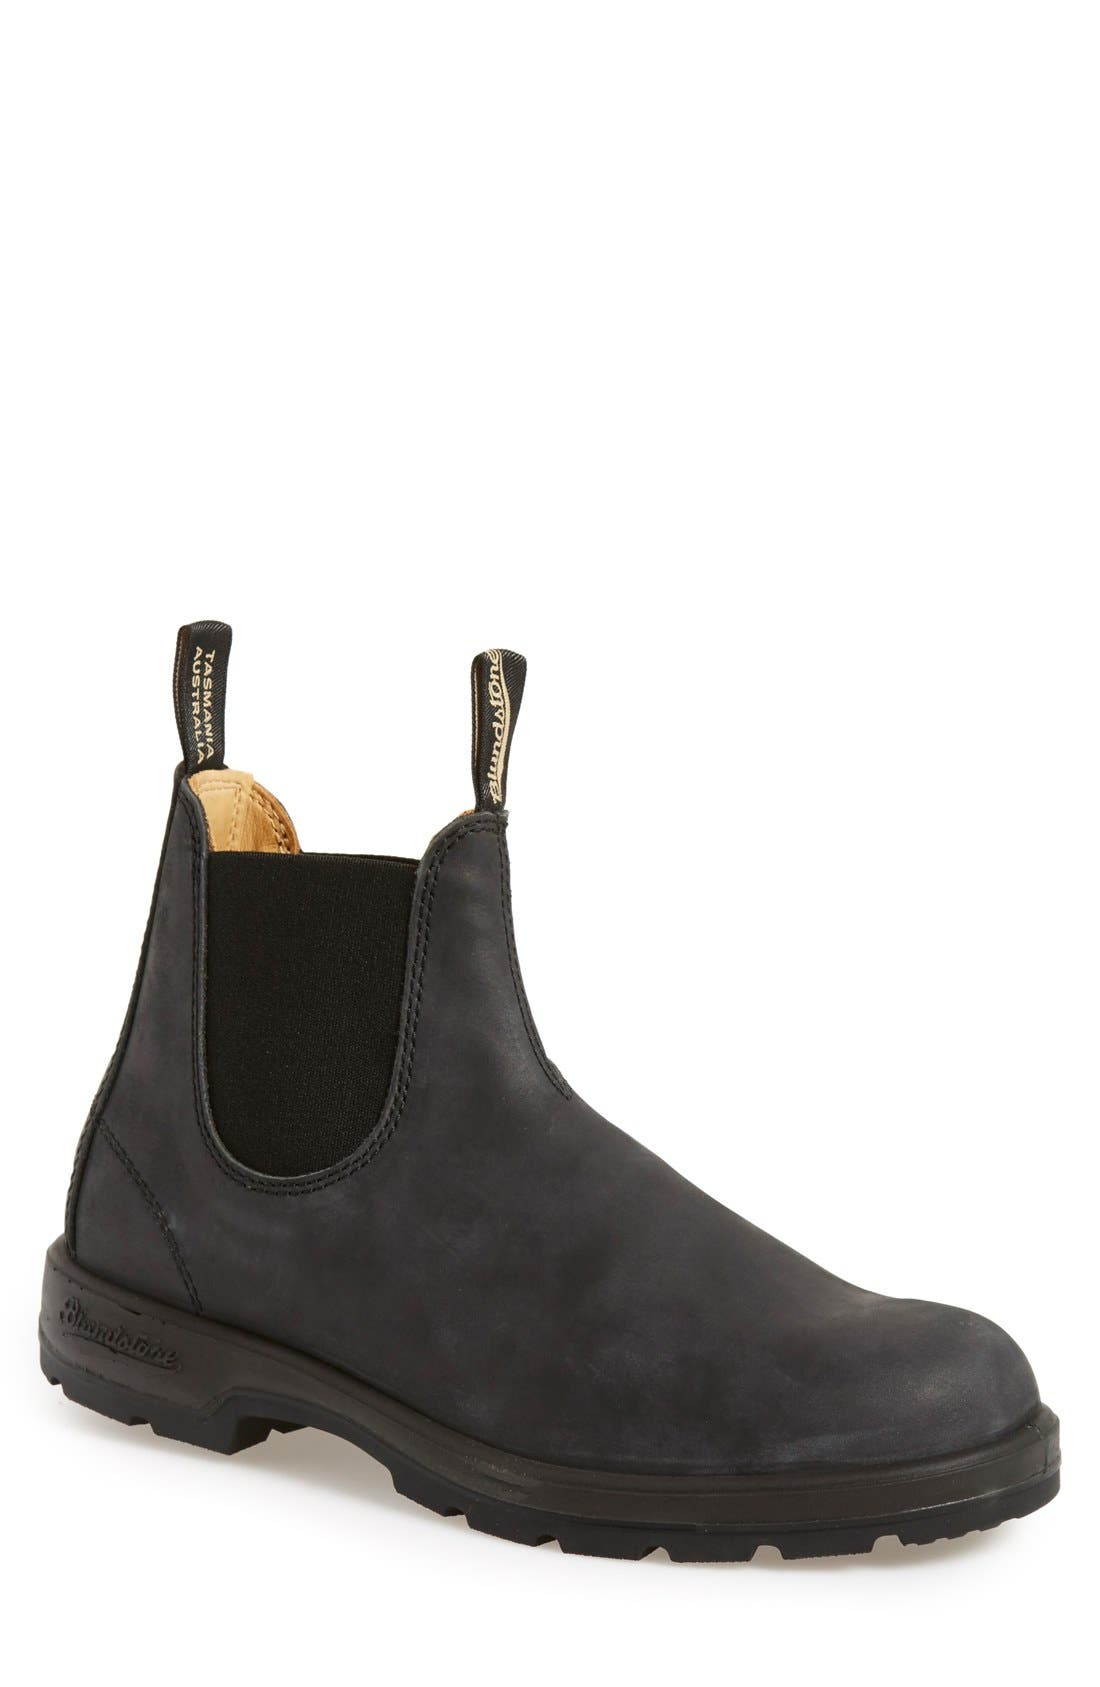 Main Image - Blundstone Footwear Chelsea Boot (Men)